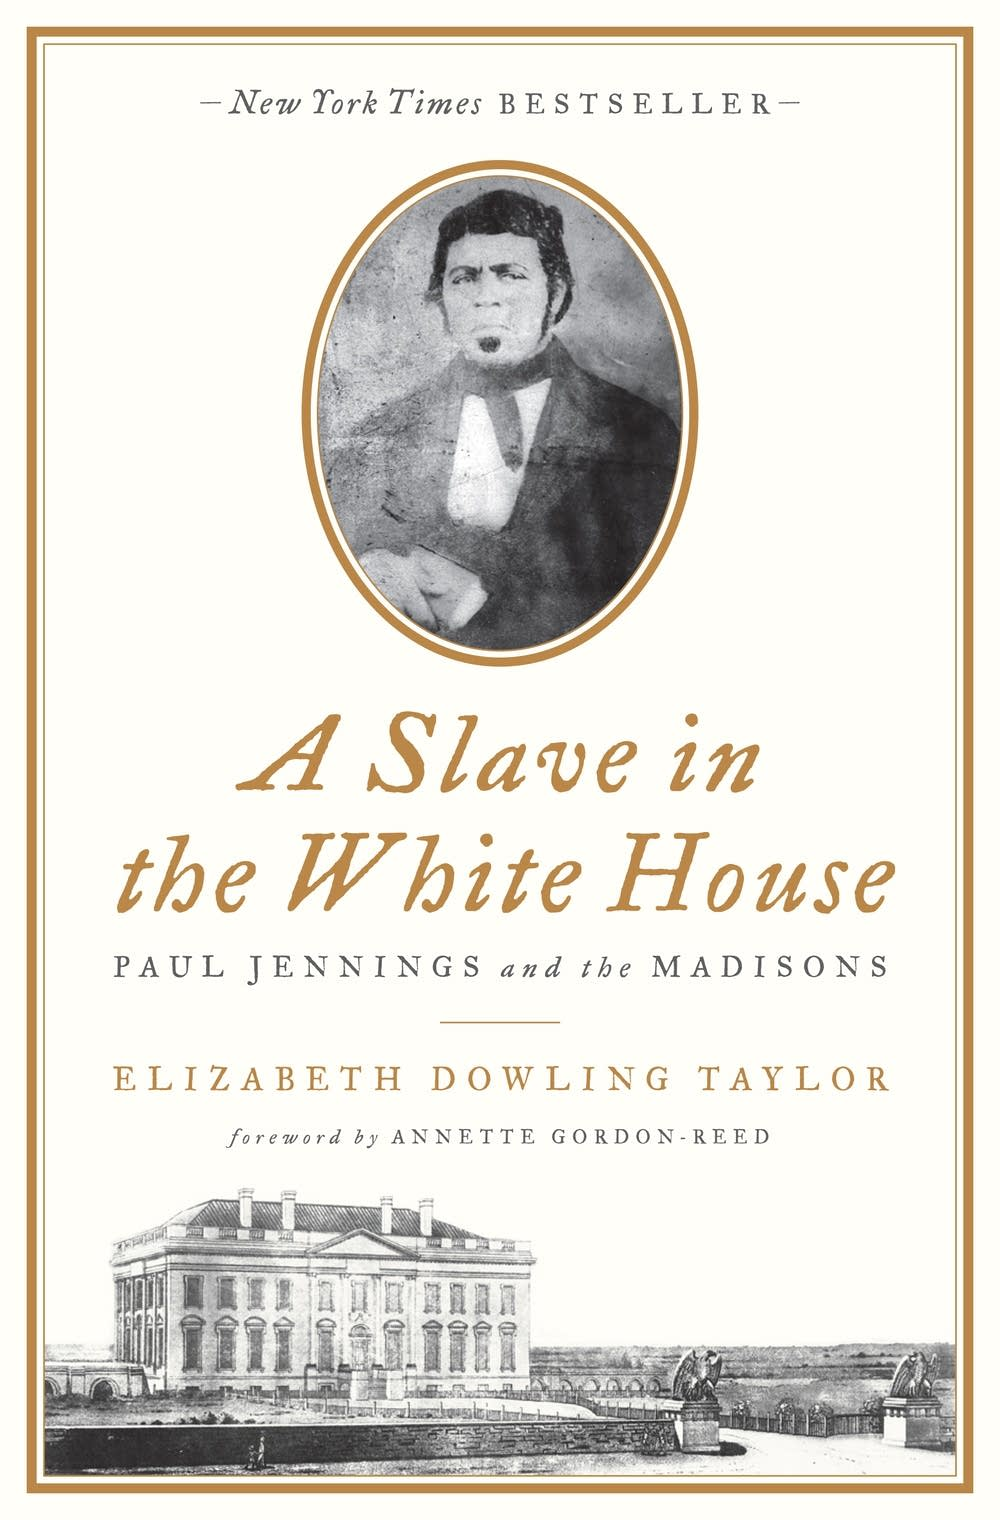 'A Slave in the White House'